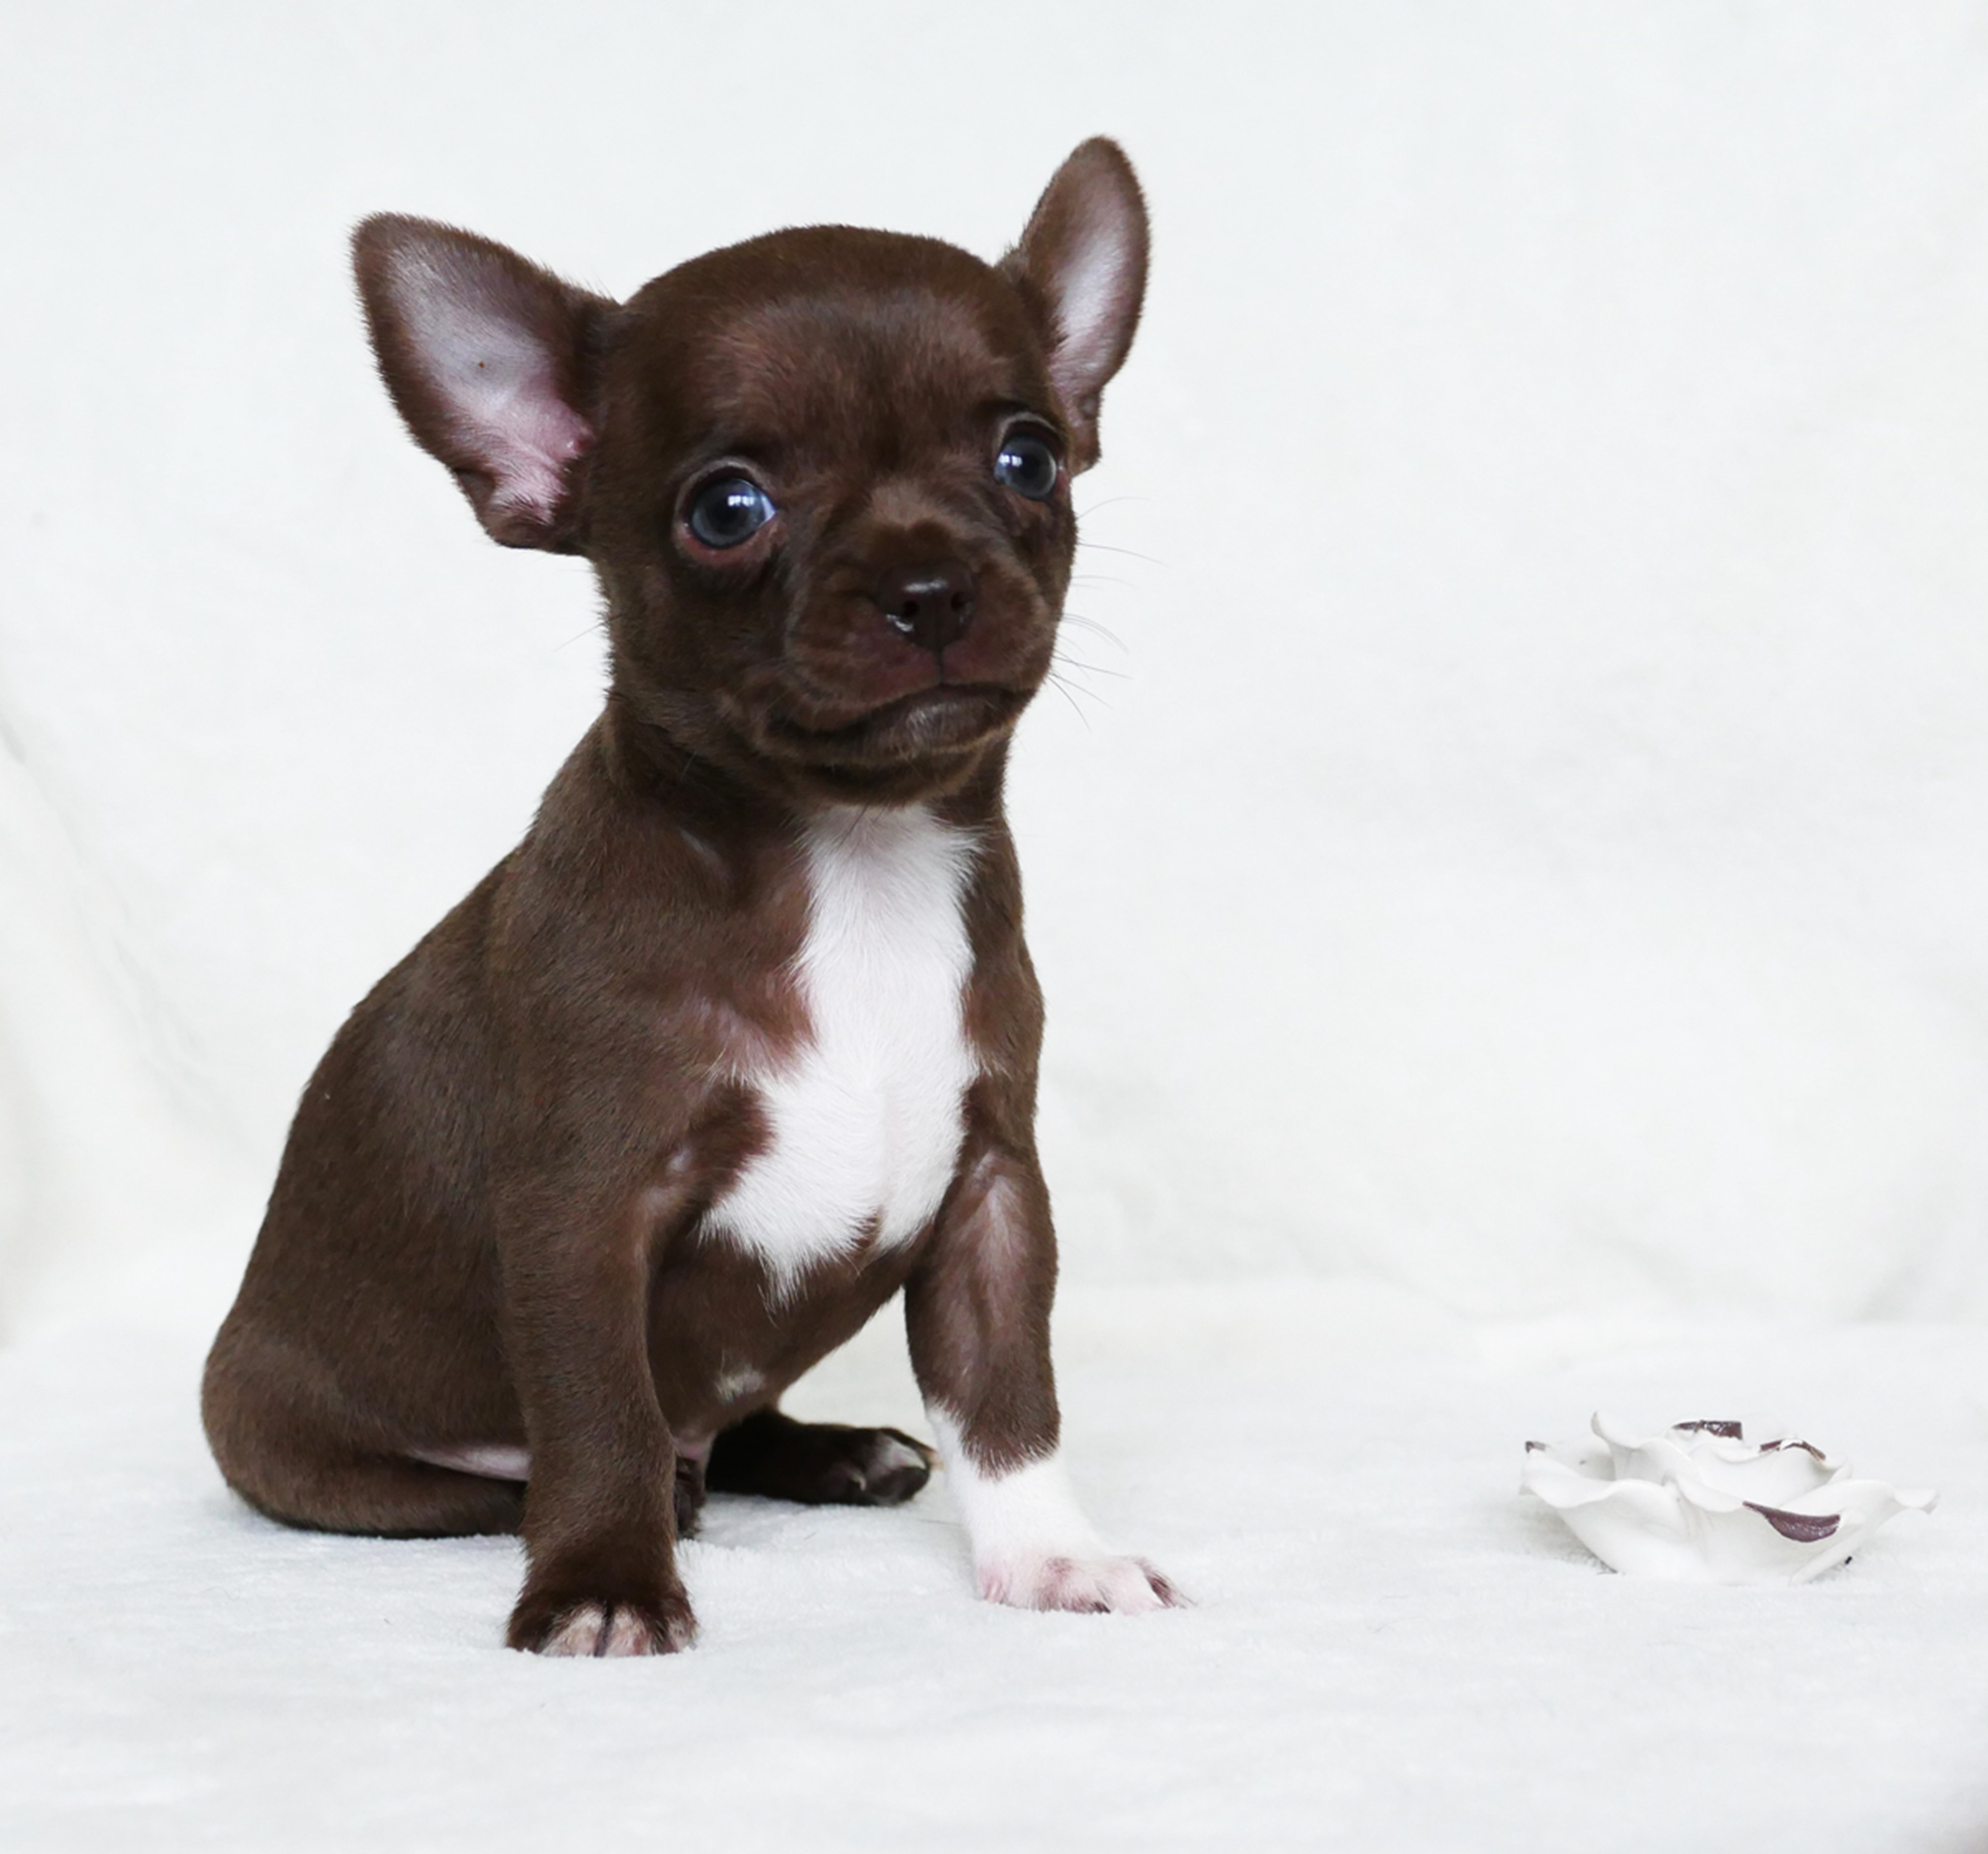 Unsere Chihuahua Welpen Schweizer Chihuahua Zucht Black Pearl Chihuahuas